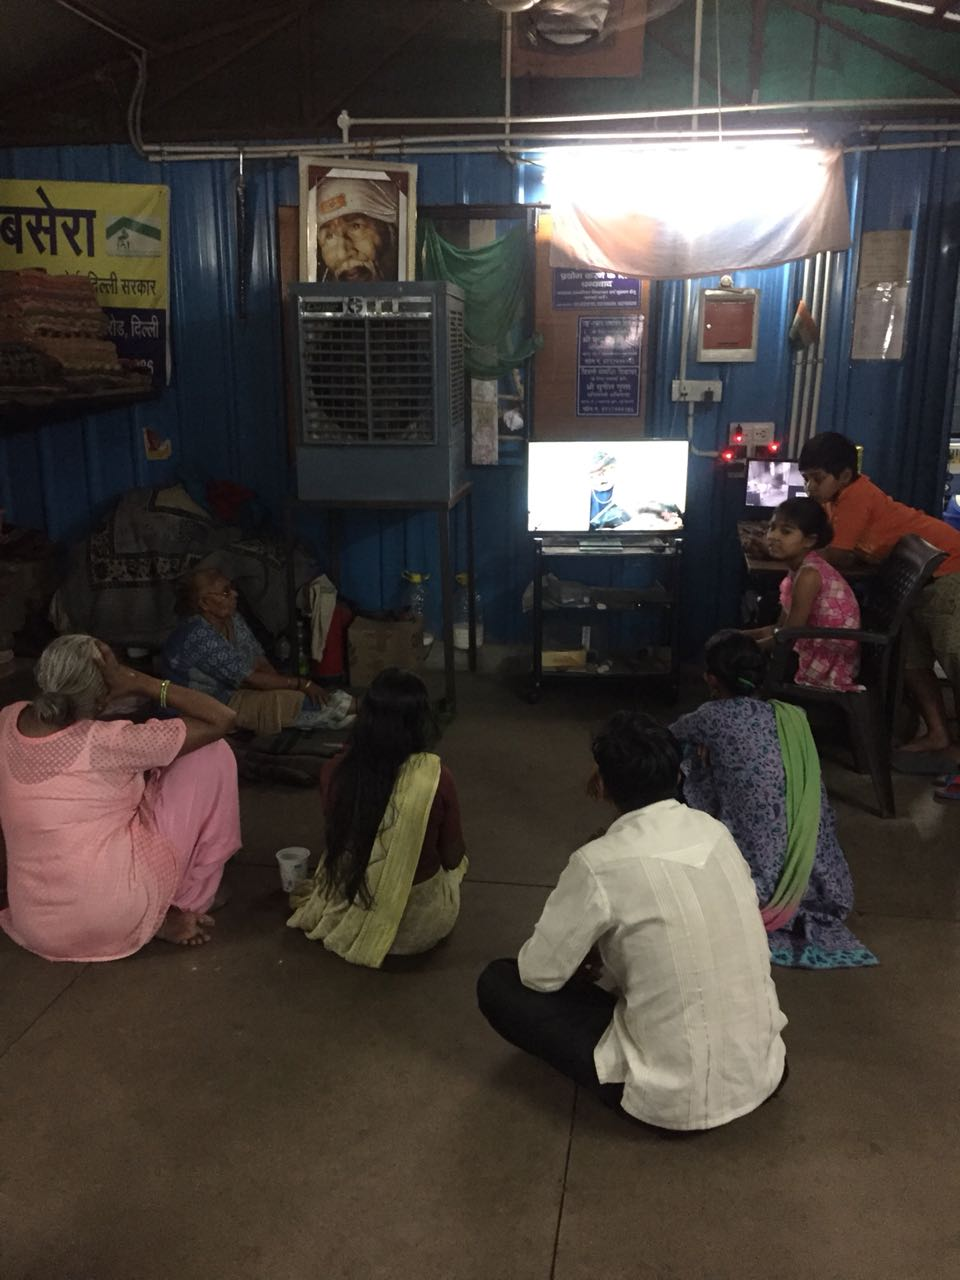 While the air cooler may not work, the TV does, as the women watch a serial at a night shelter in Lodi Road, New Delhi. Photo Credit: Anasuya Basu